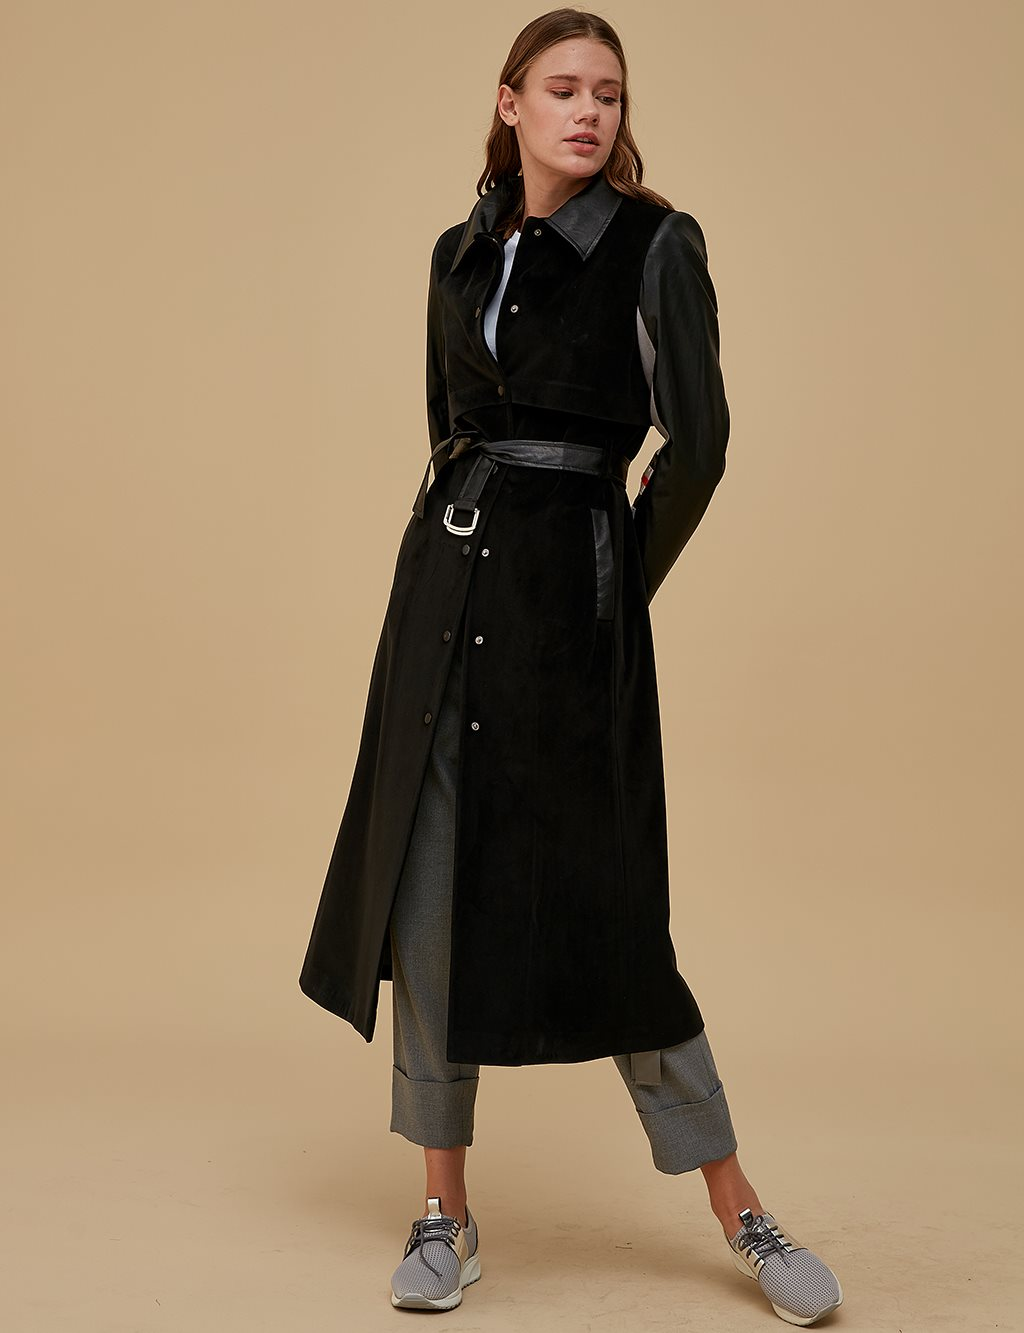 Imitation Leather Sleeve Coat A9 14012 Black